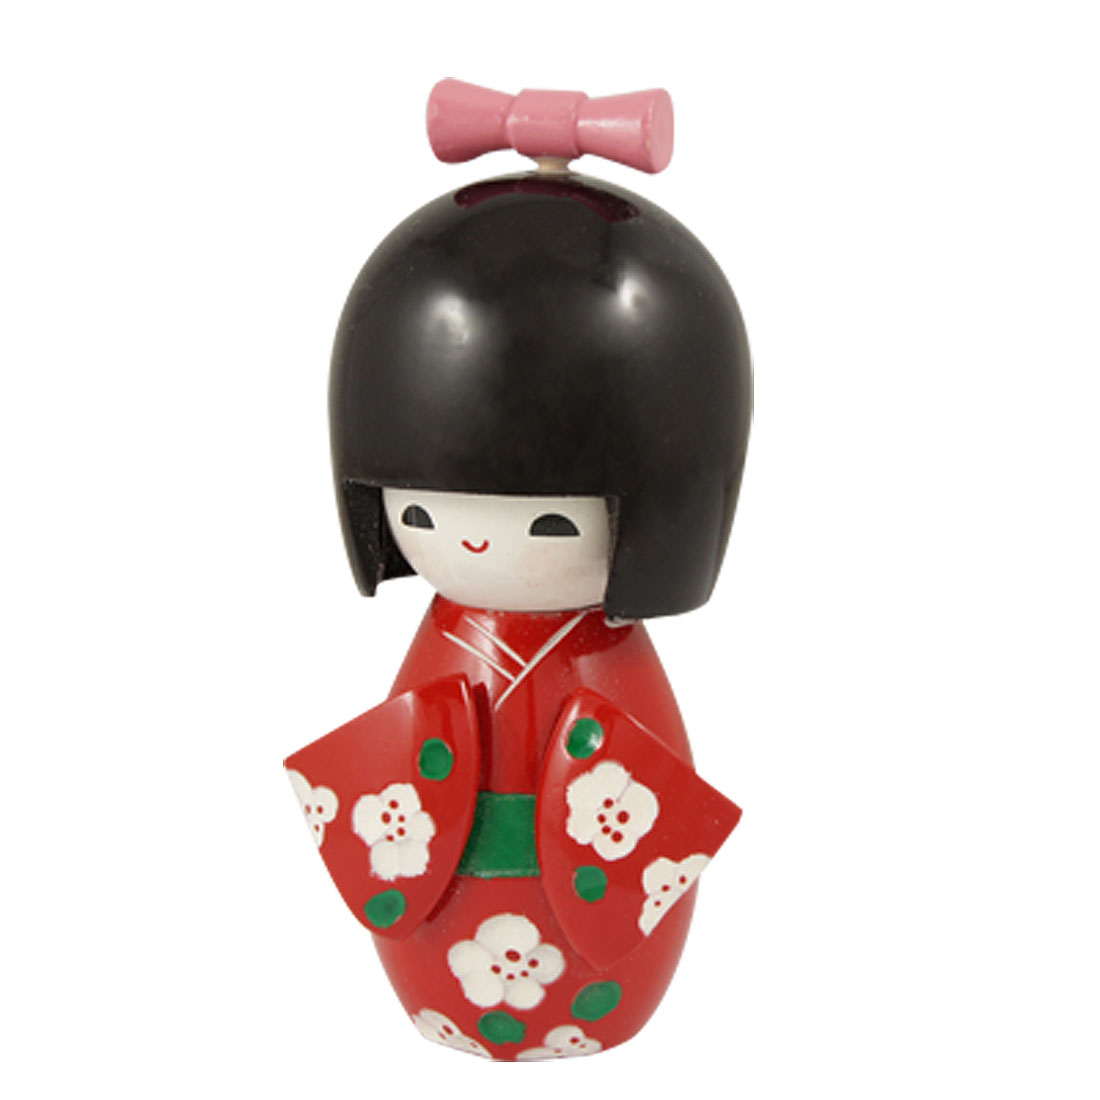 Pink Bow Tie Floral Red Kimono Wooden Japanese Kokeshi Doll